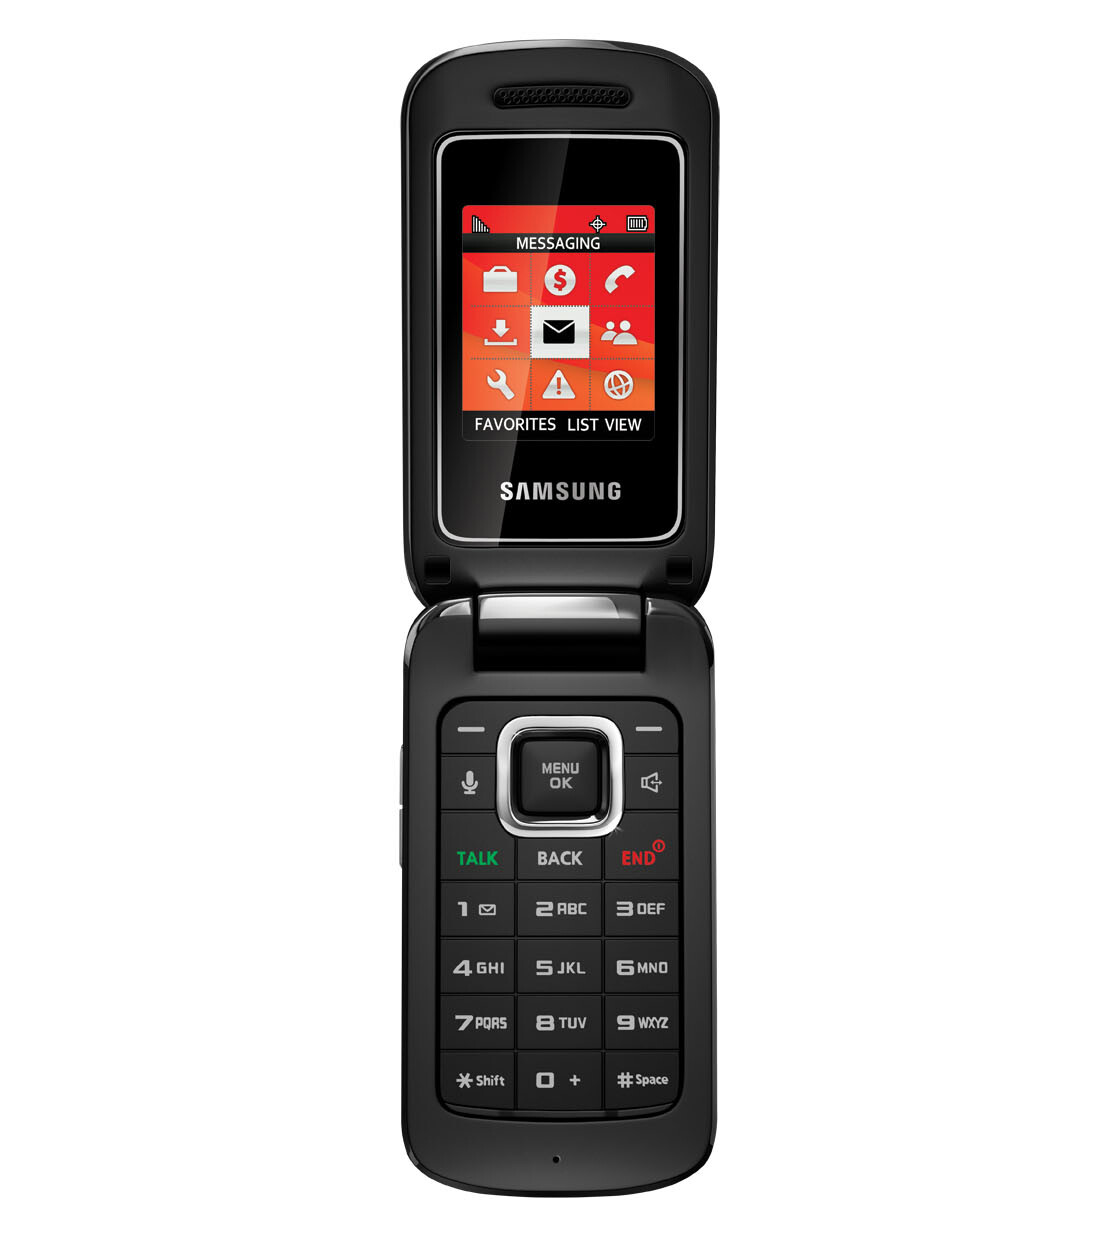 virgin mobile launches 2 new samsung feature phones. Black Bedroom Furniture Sets. Home Design Ideas